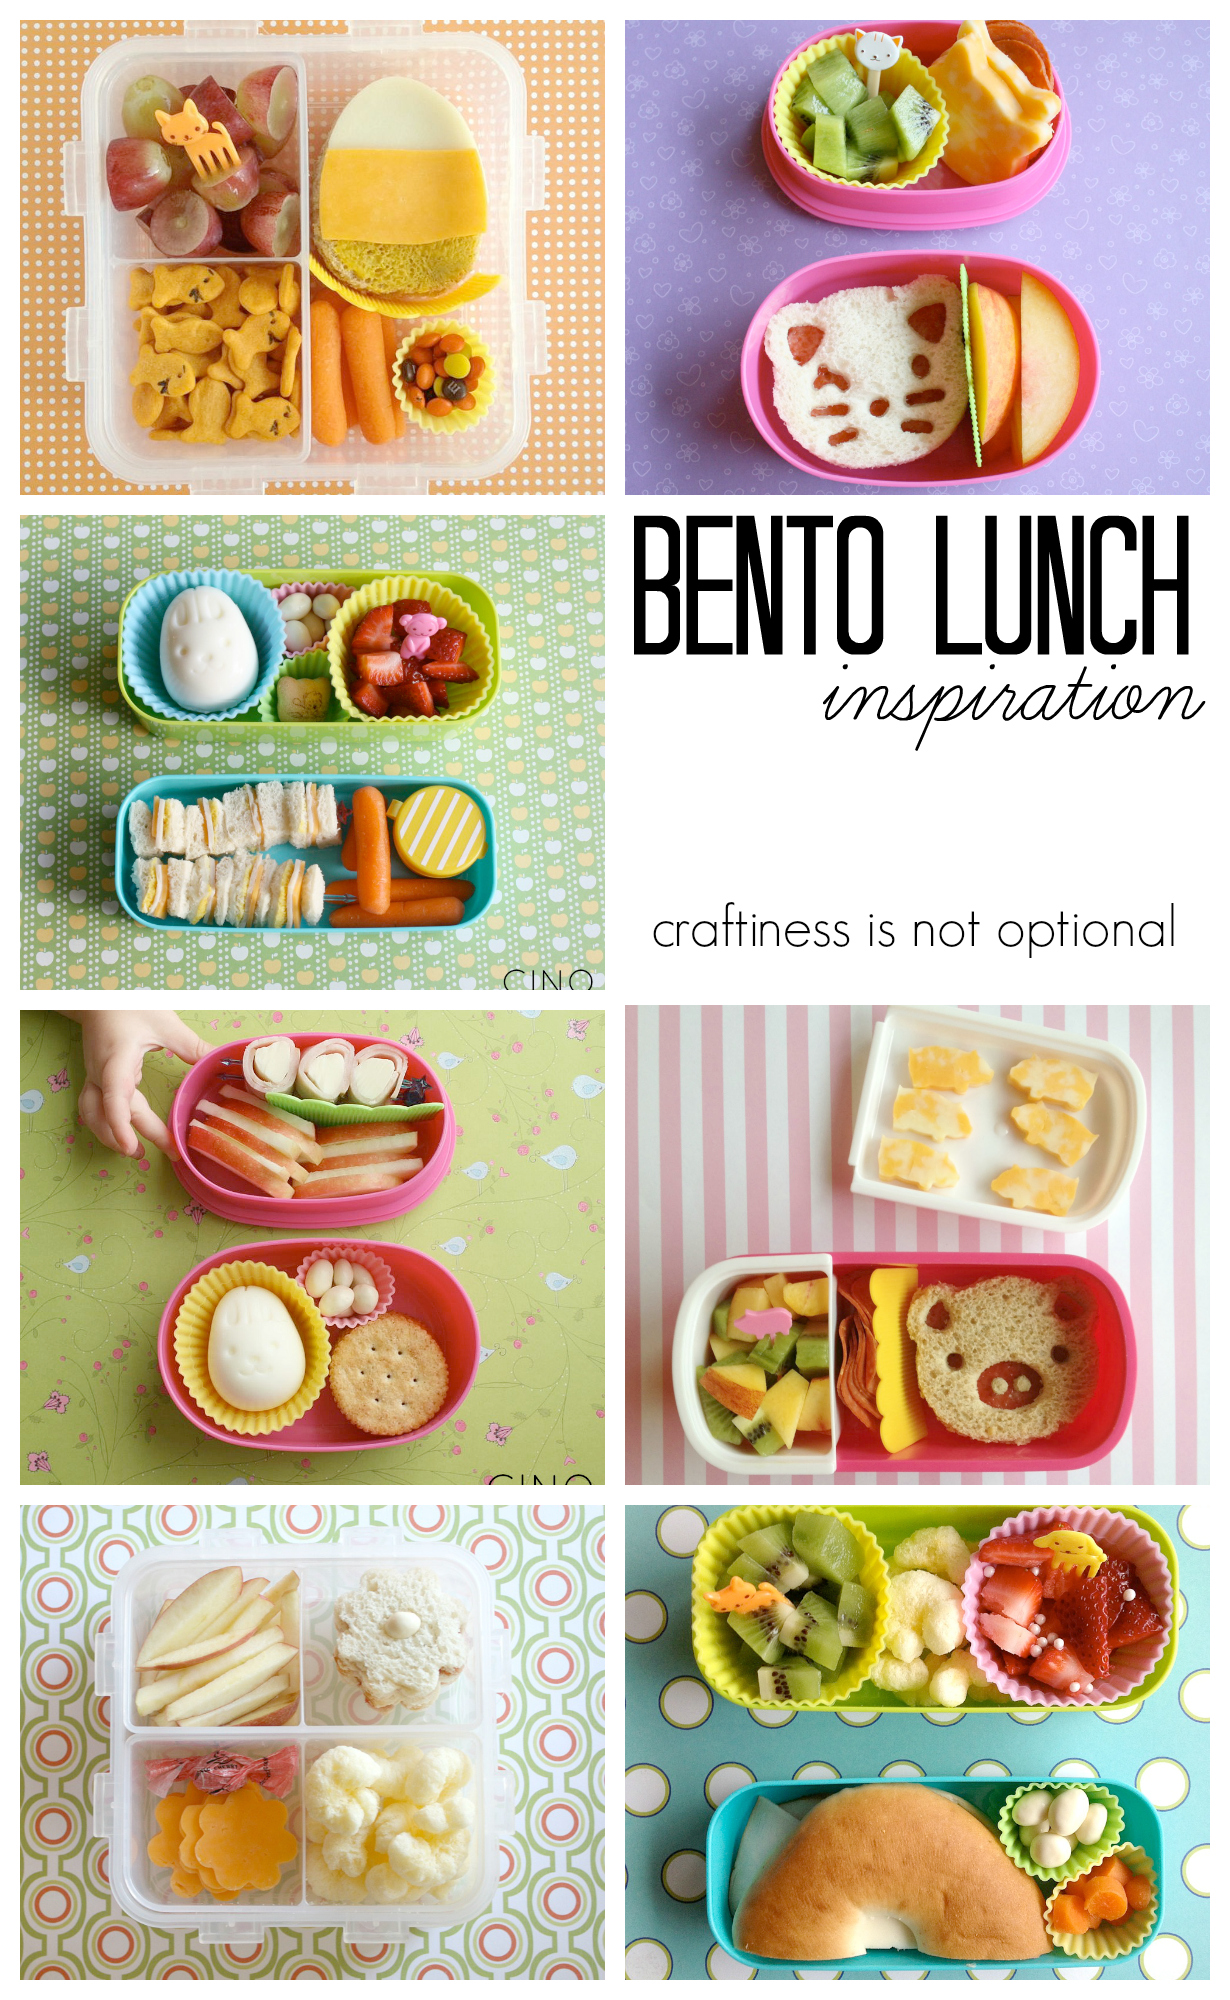 bento lunch inspiration!